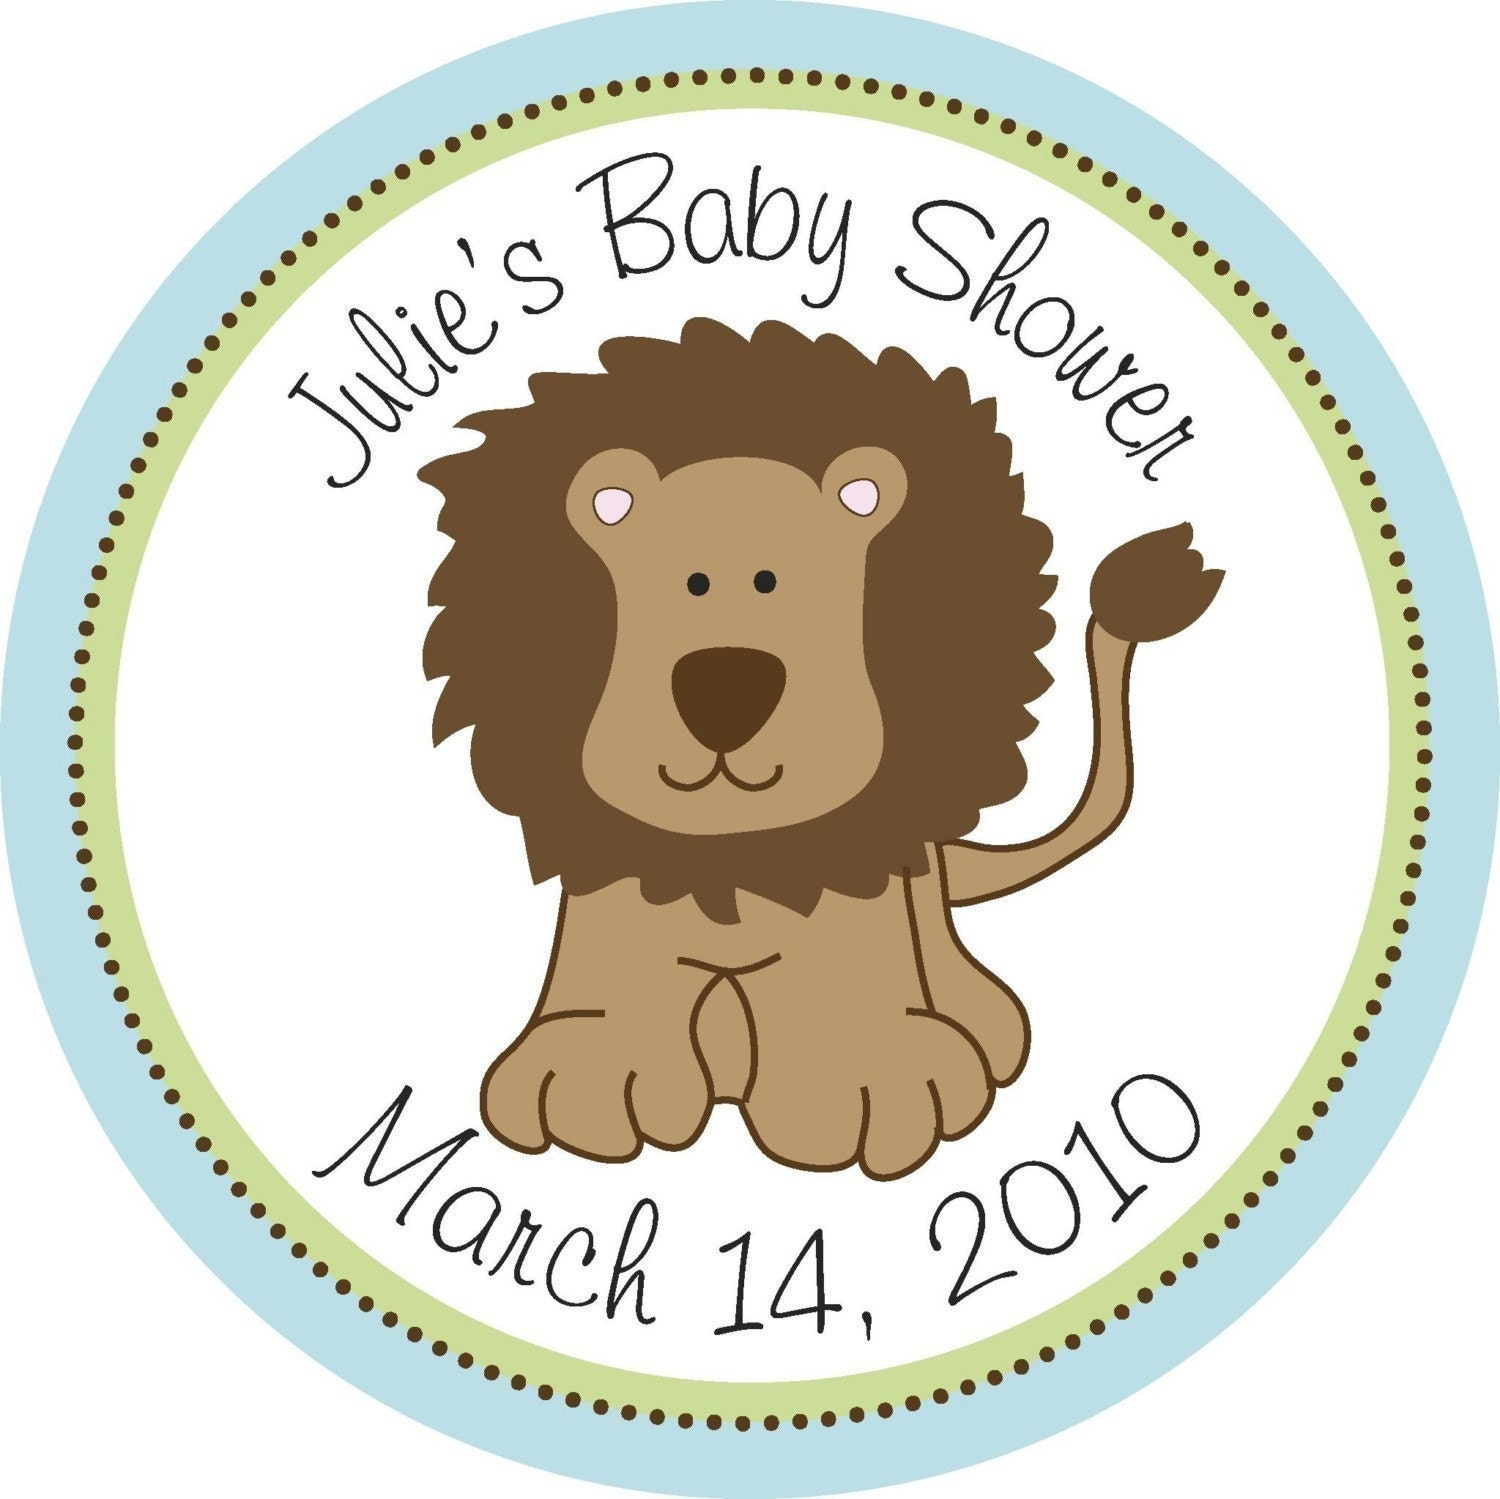 personalized stickers baby shower stickers lion sticker favor bag